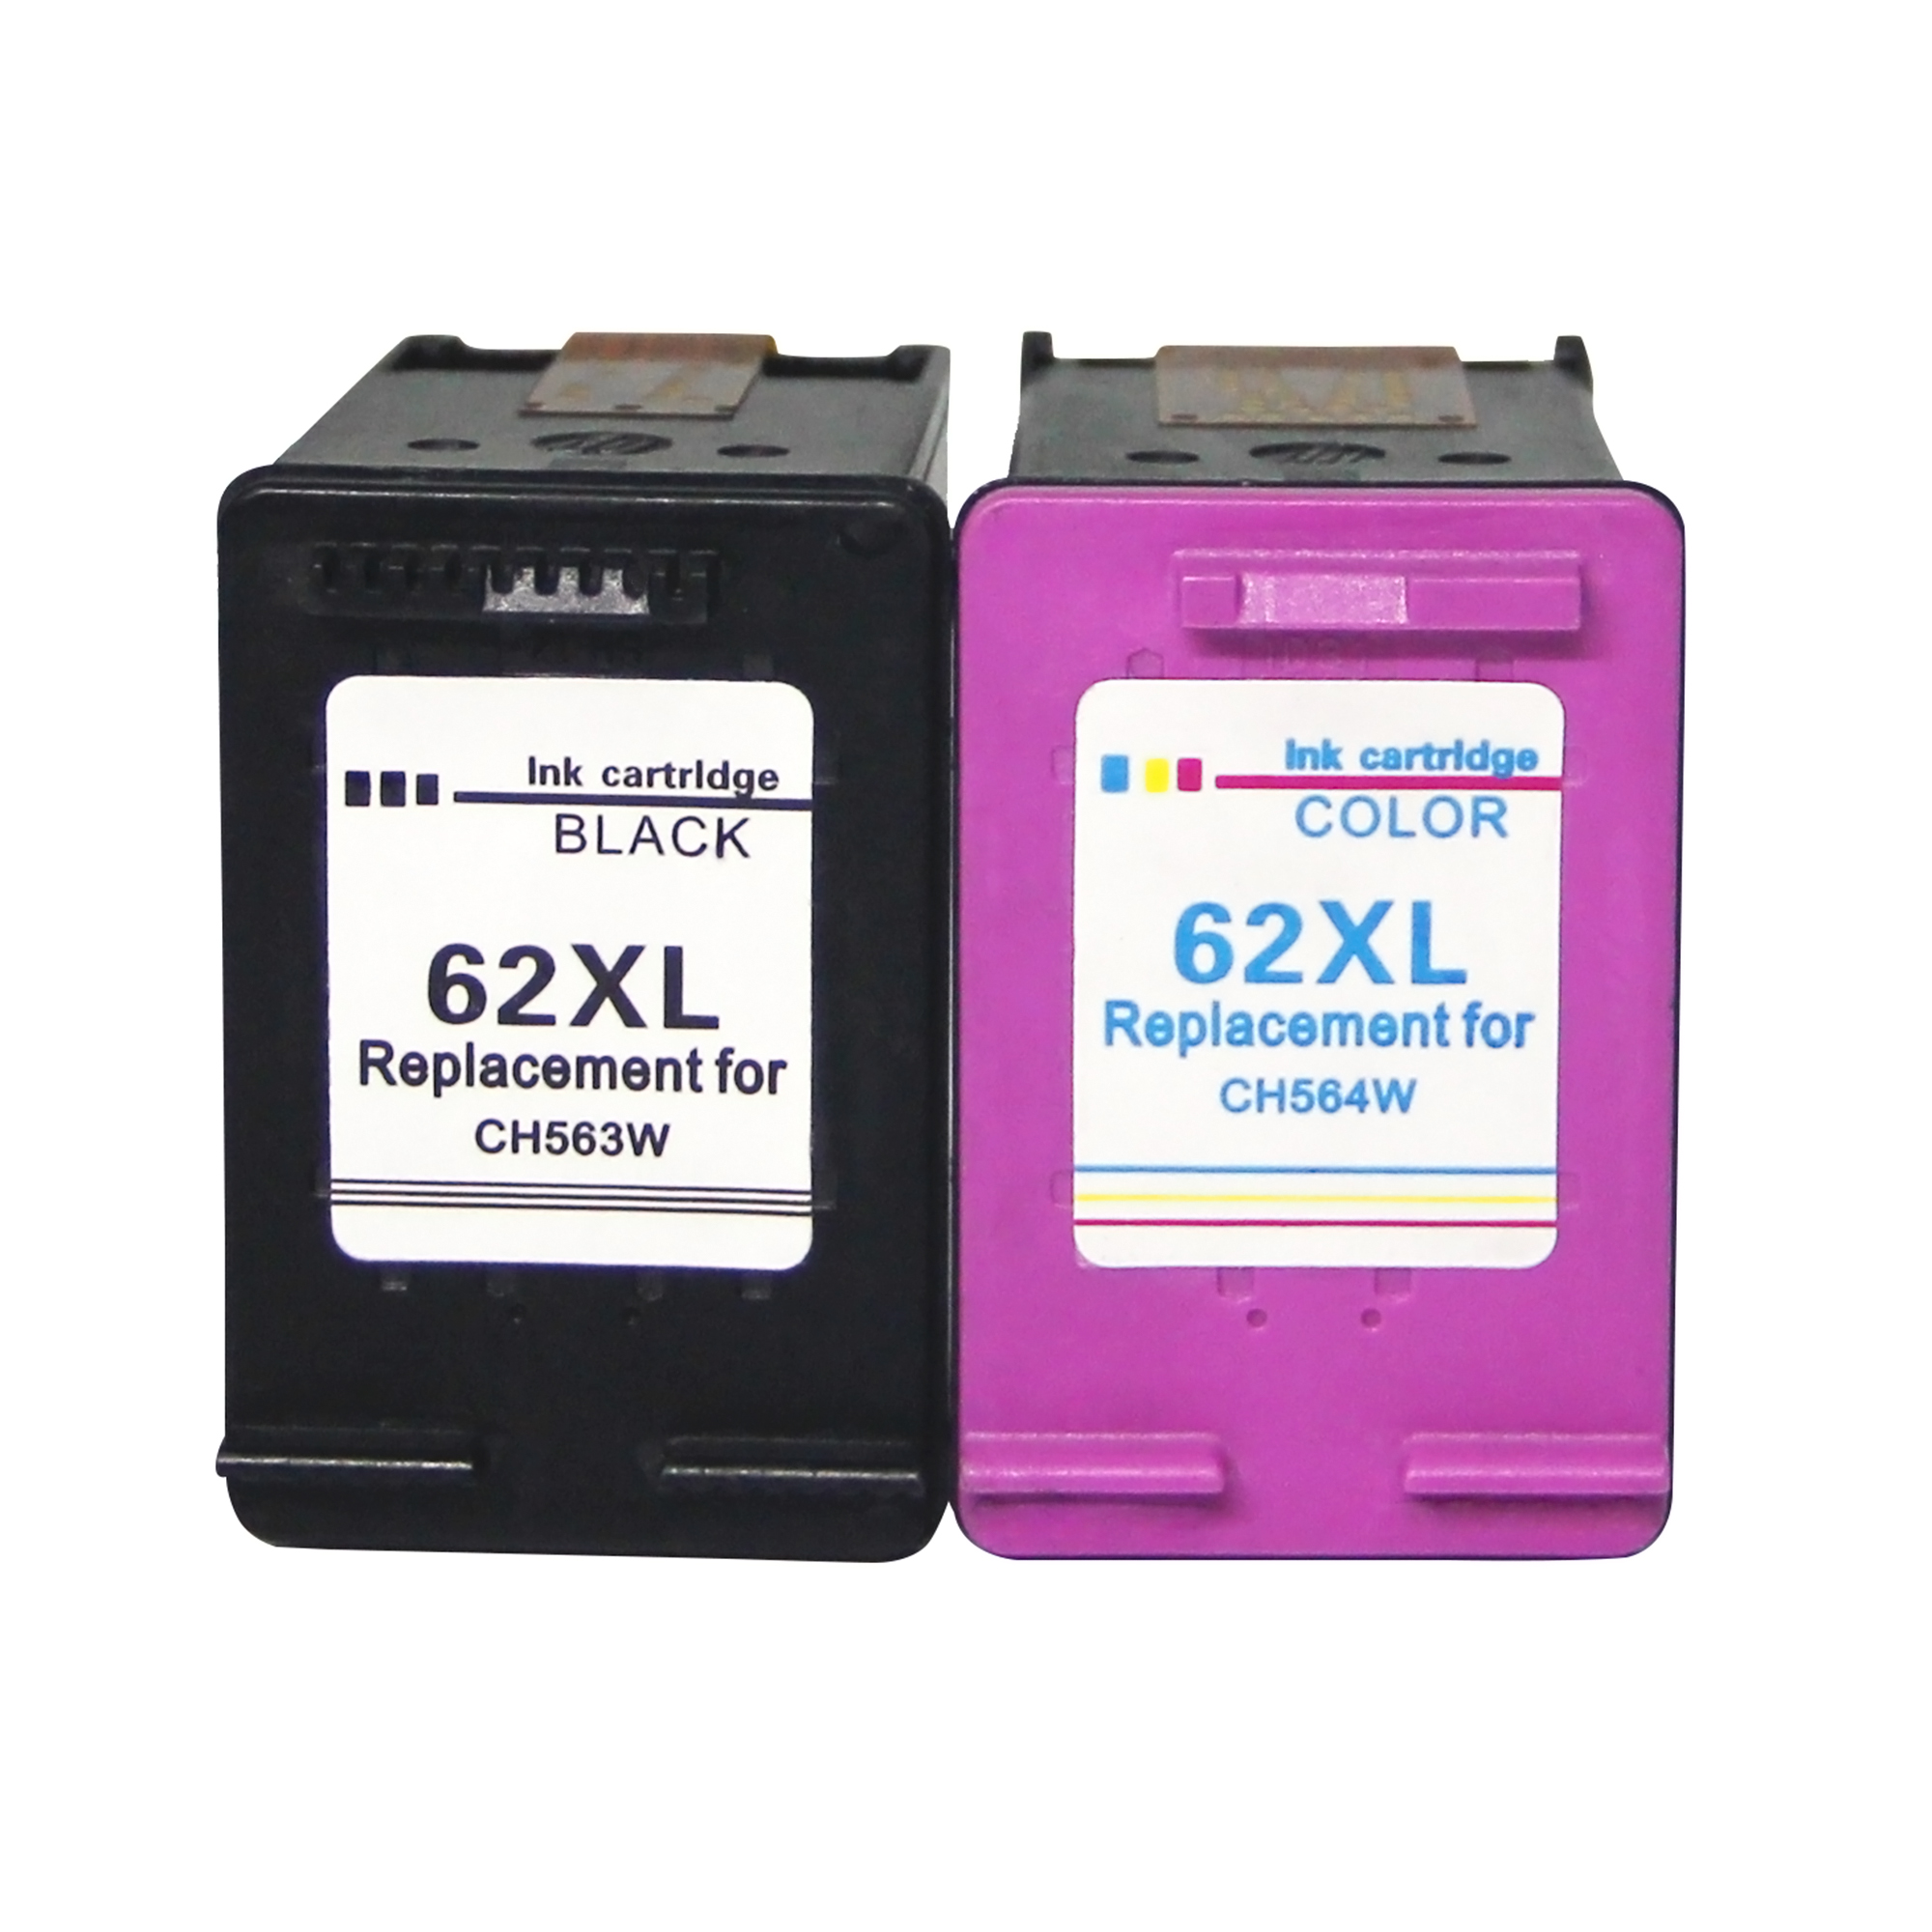 Di ricambio per HP 62 XL Cartucce di Inchiostro per HP Envy 5640 5540 5546 5544 5644 HP OfficeJet 5742 5744 200 250 MobileImpresoras